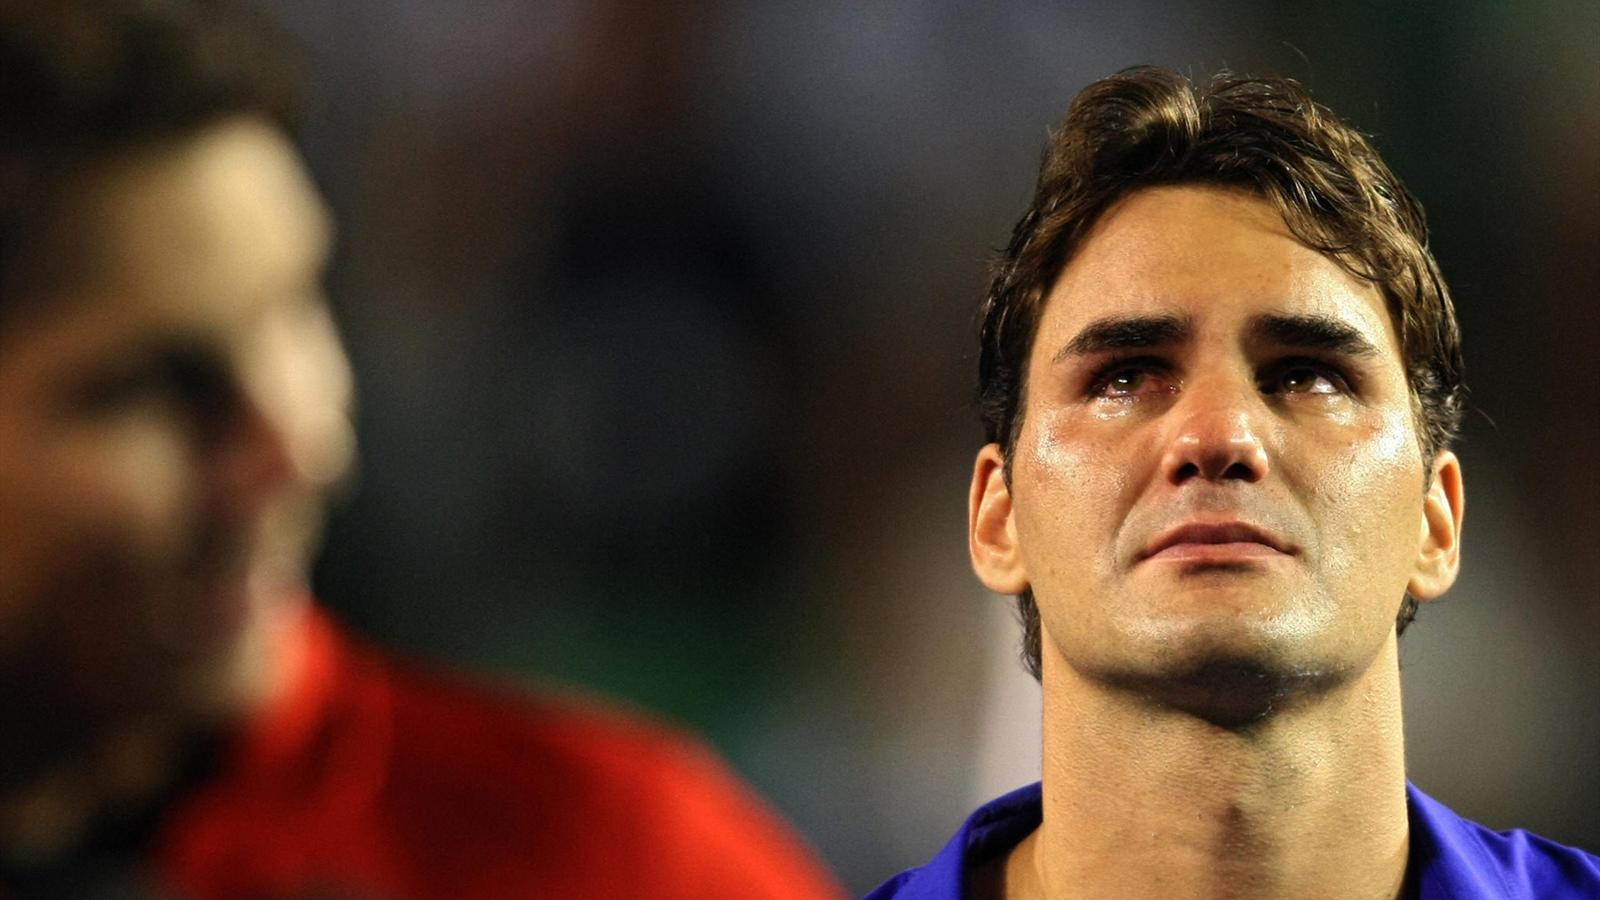 The day when... Nadal made Federer cry